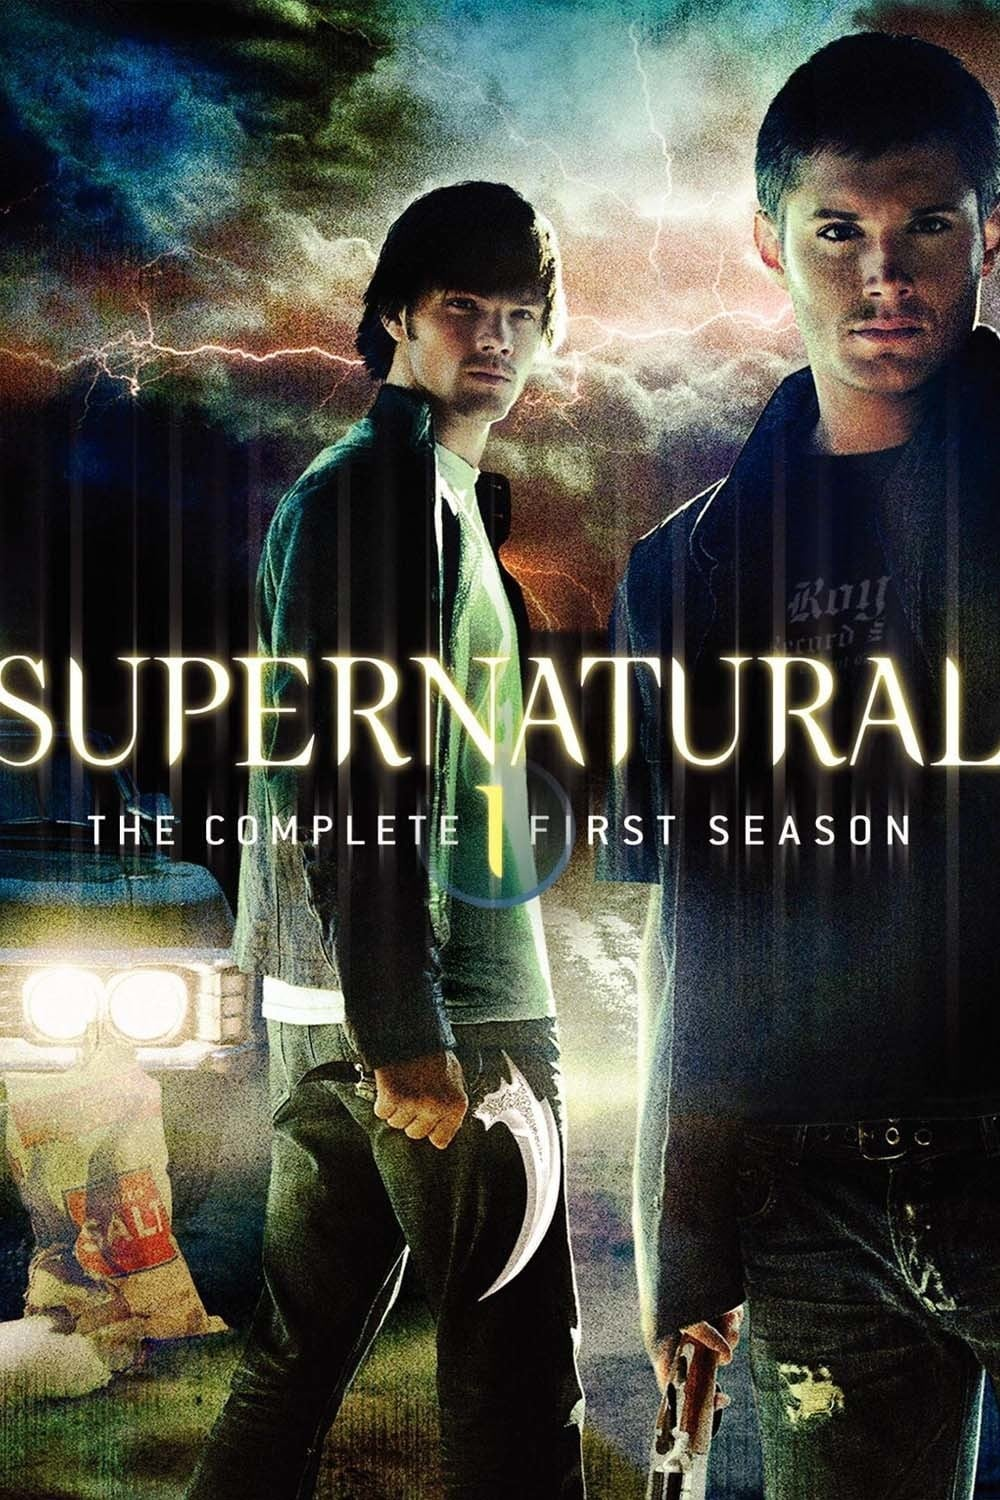 Supernatural Season 1 Complete